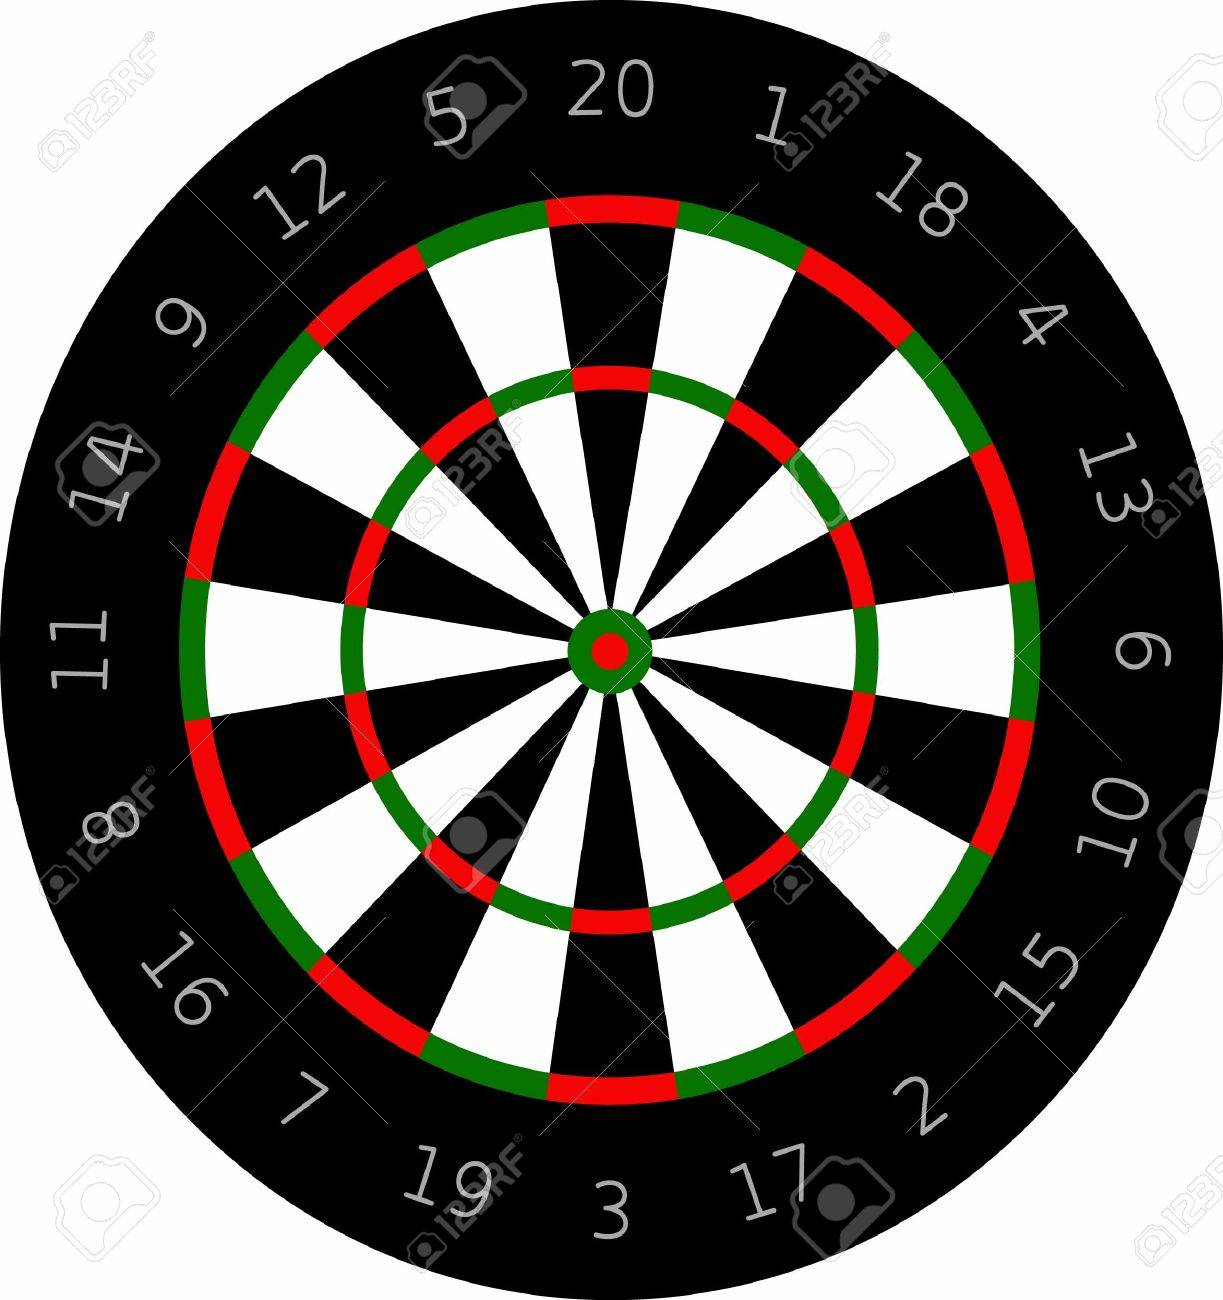 The Perfect Design For Playing Darts Place On Shirts And Hats